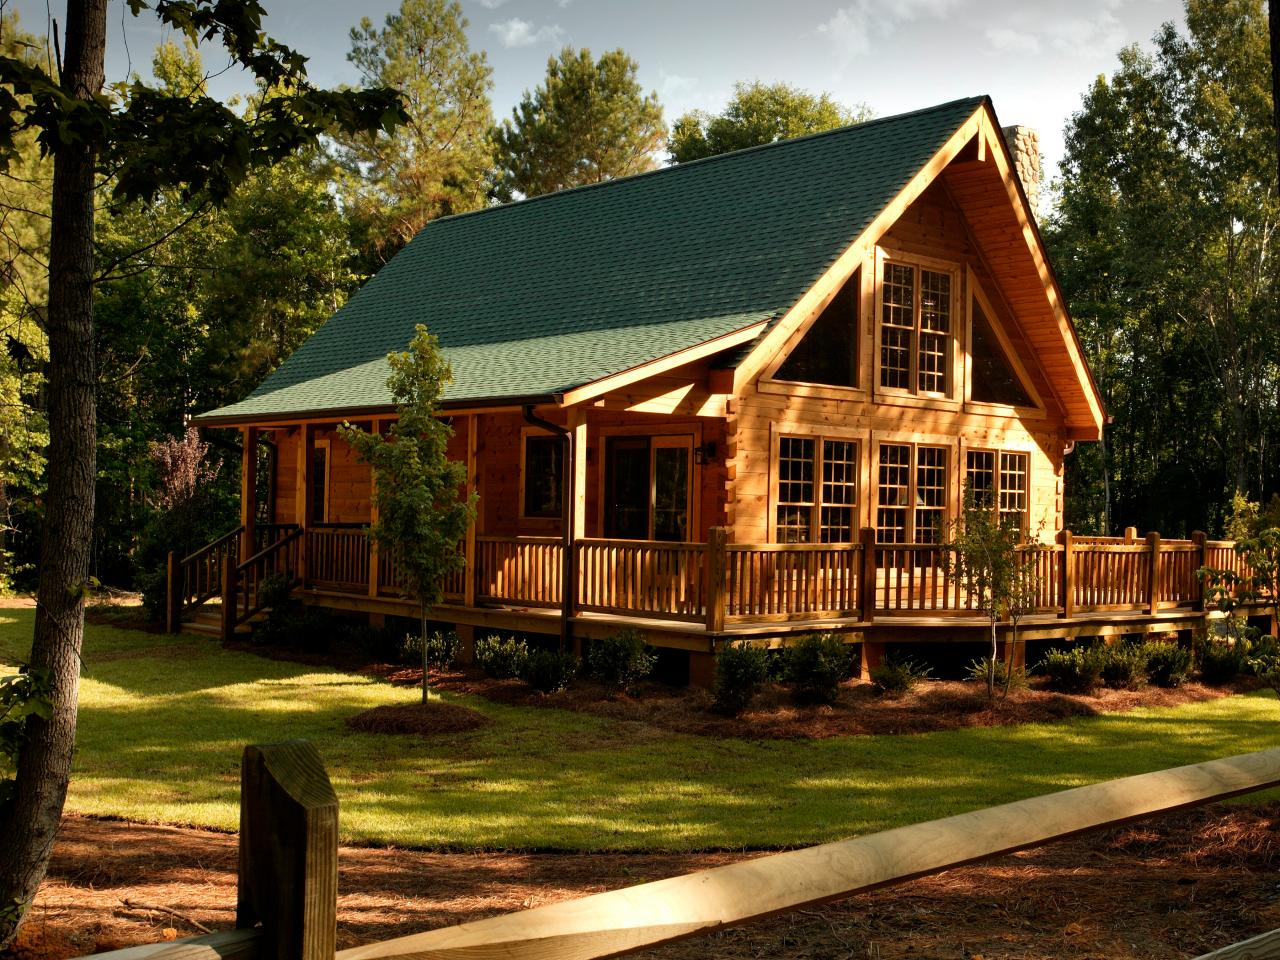 Dream Log Homes DIY Network Blog Cabin 2010